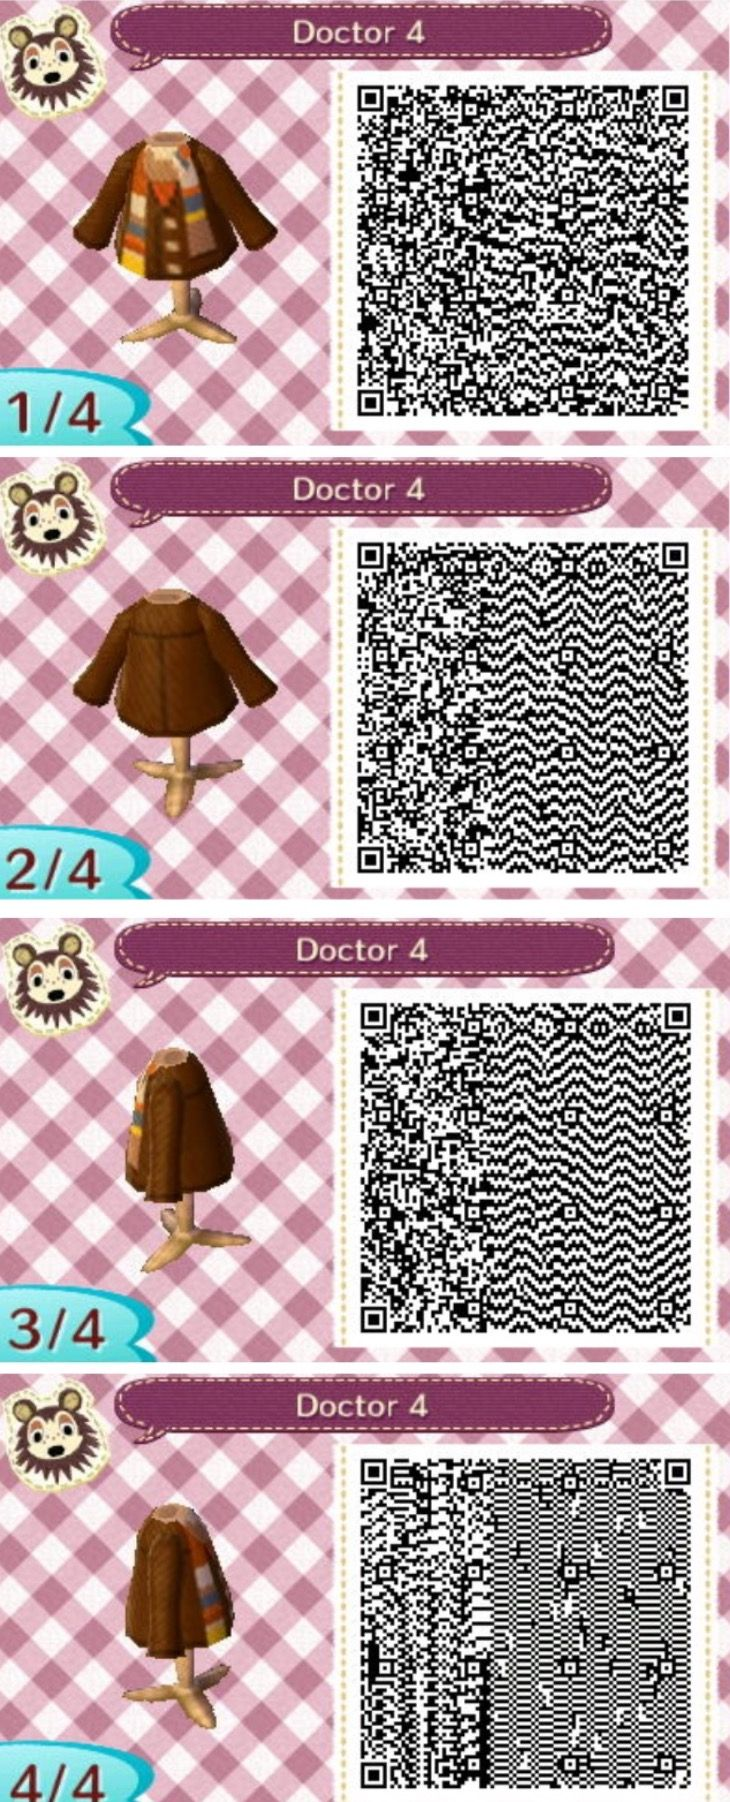 Leather jacket qr code new leaf - The 4th Doctor Who Animal Crossing New Leaf Qr Codes